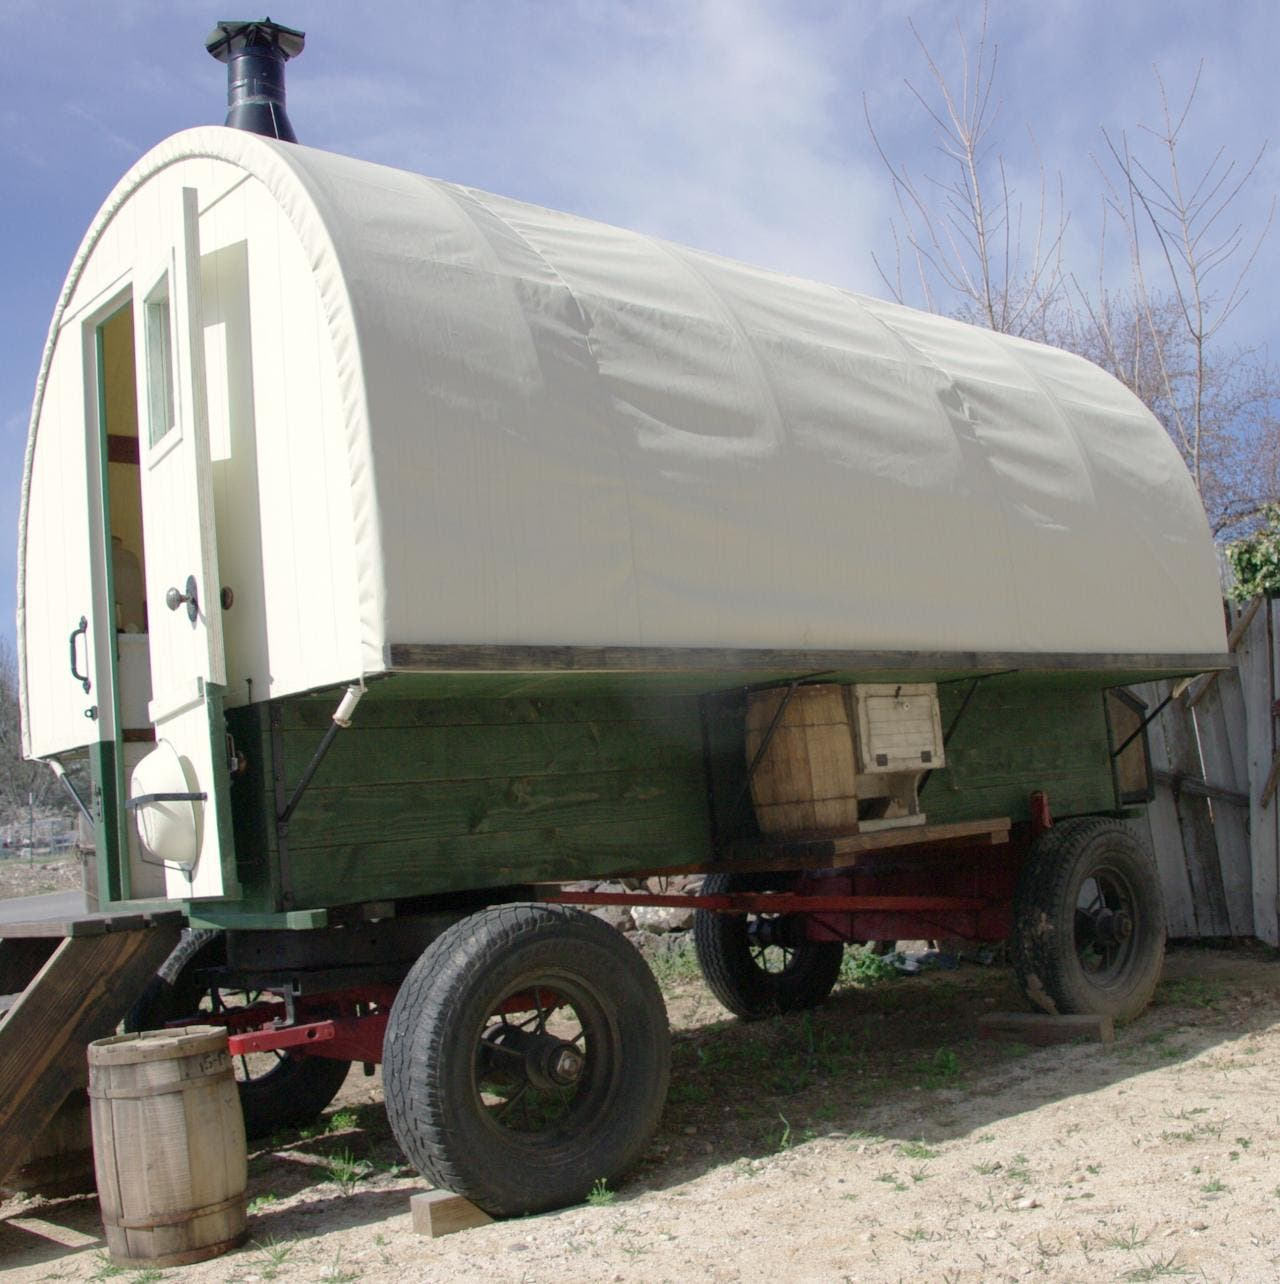 idaho sheep wagons - Sheep Wagon